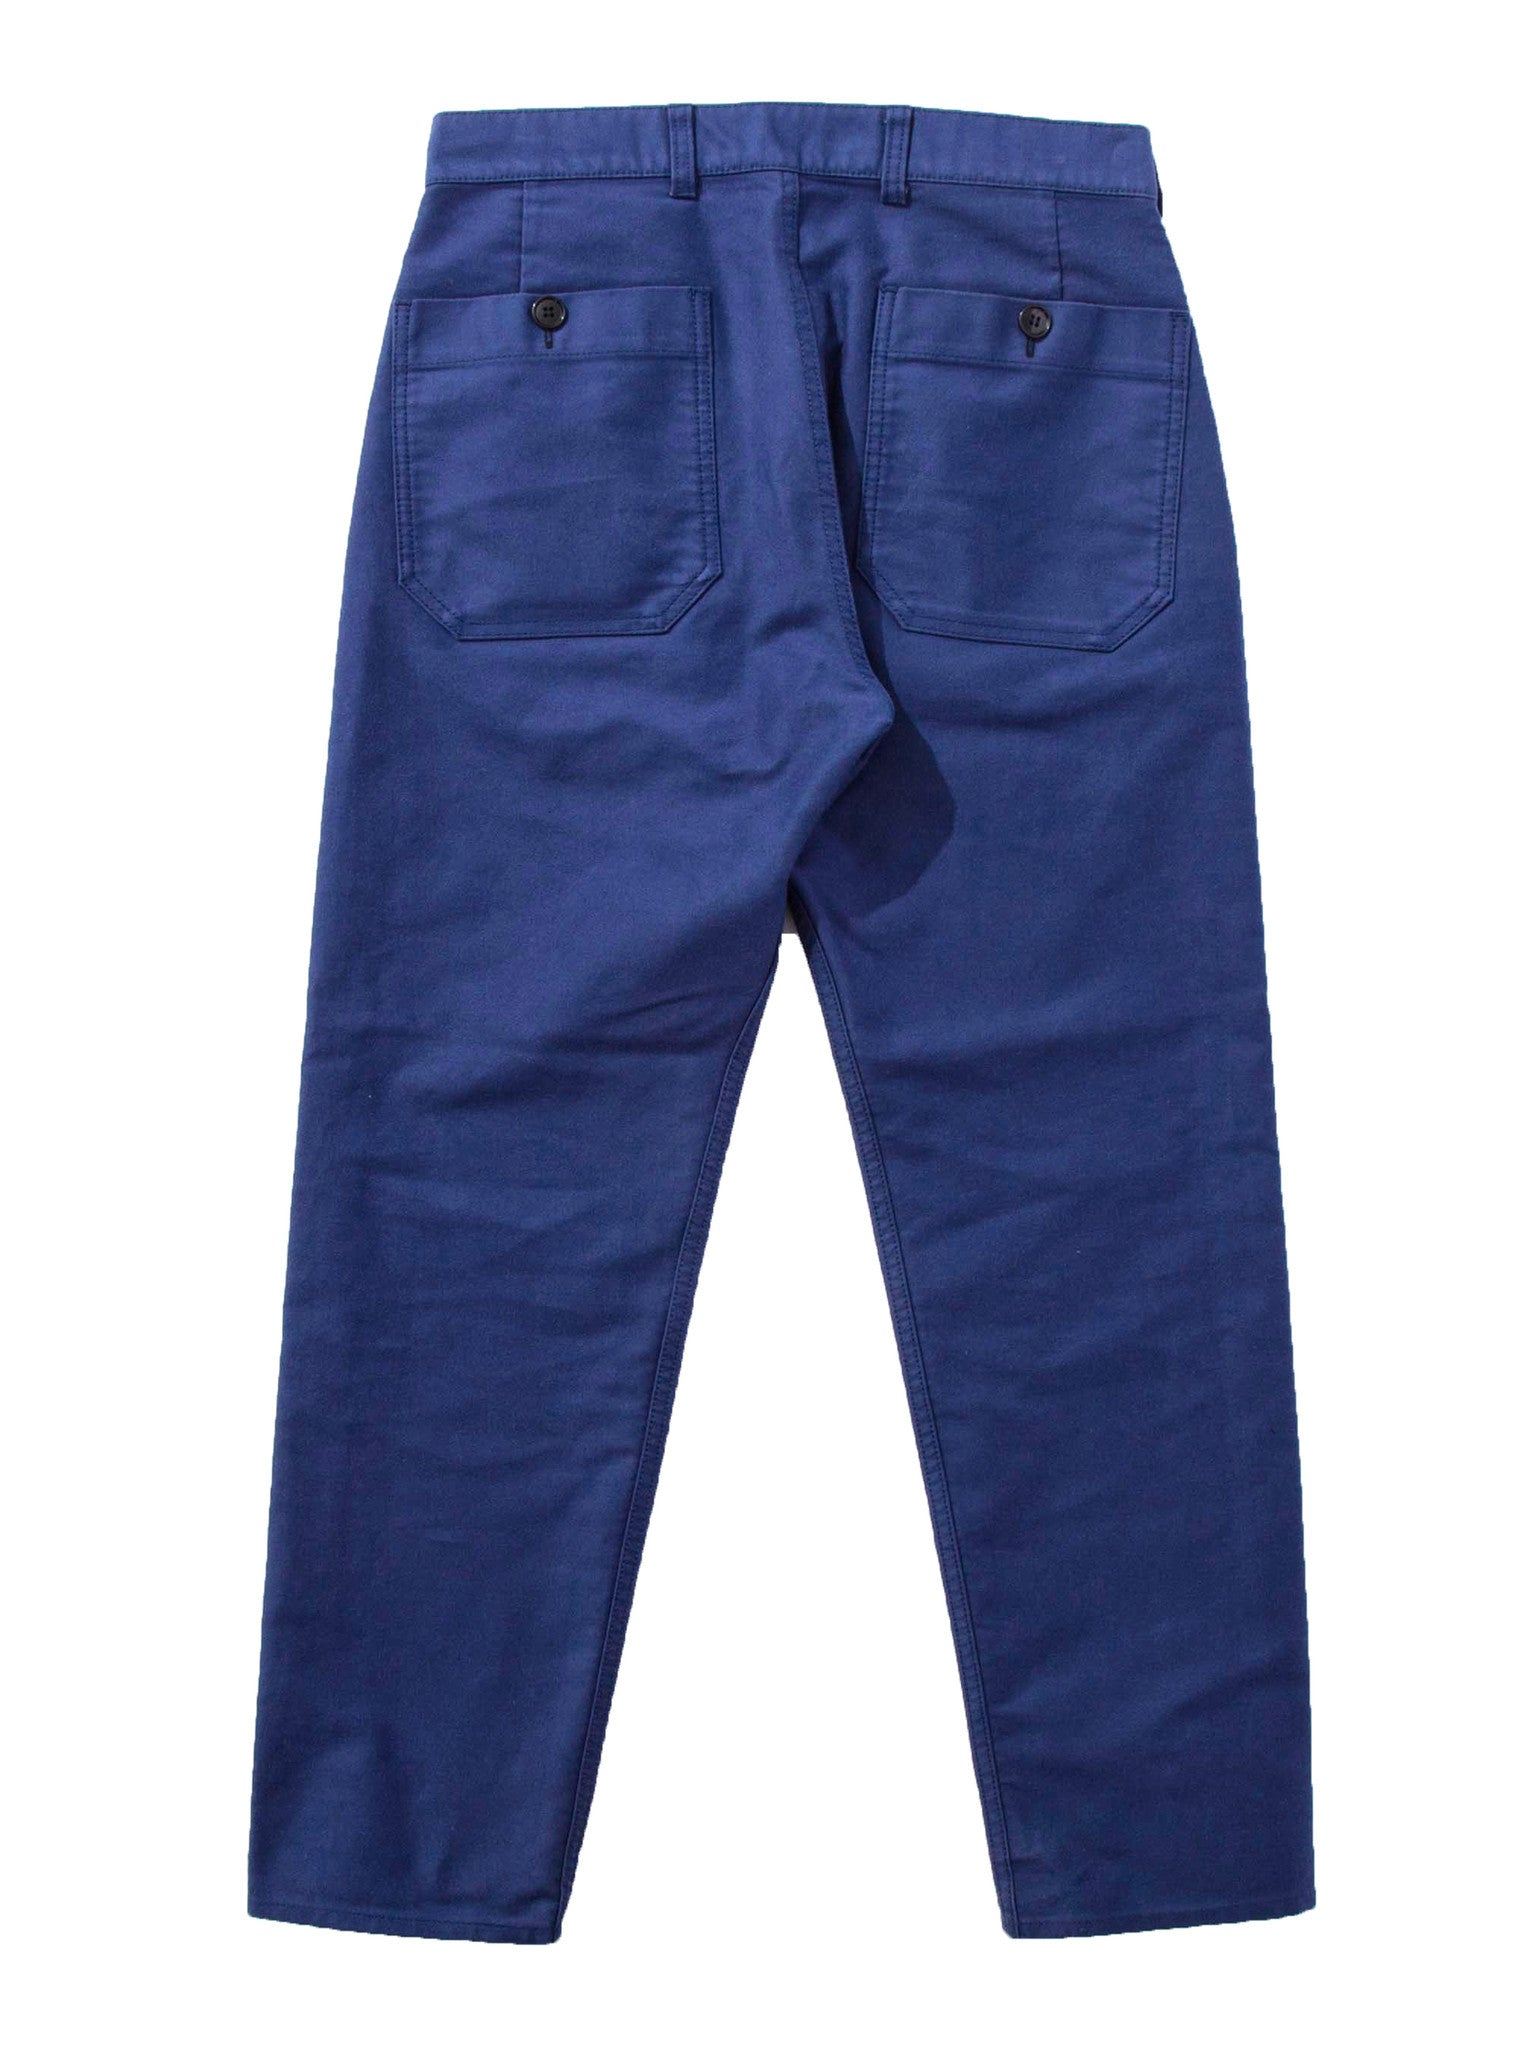 Navy Work Trousers 5